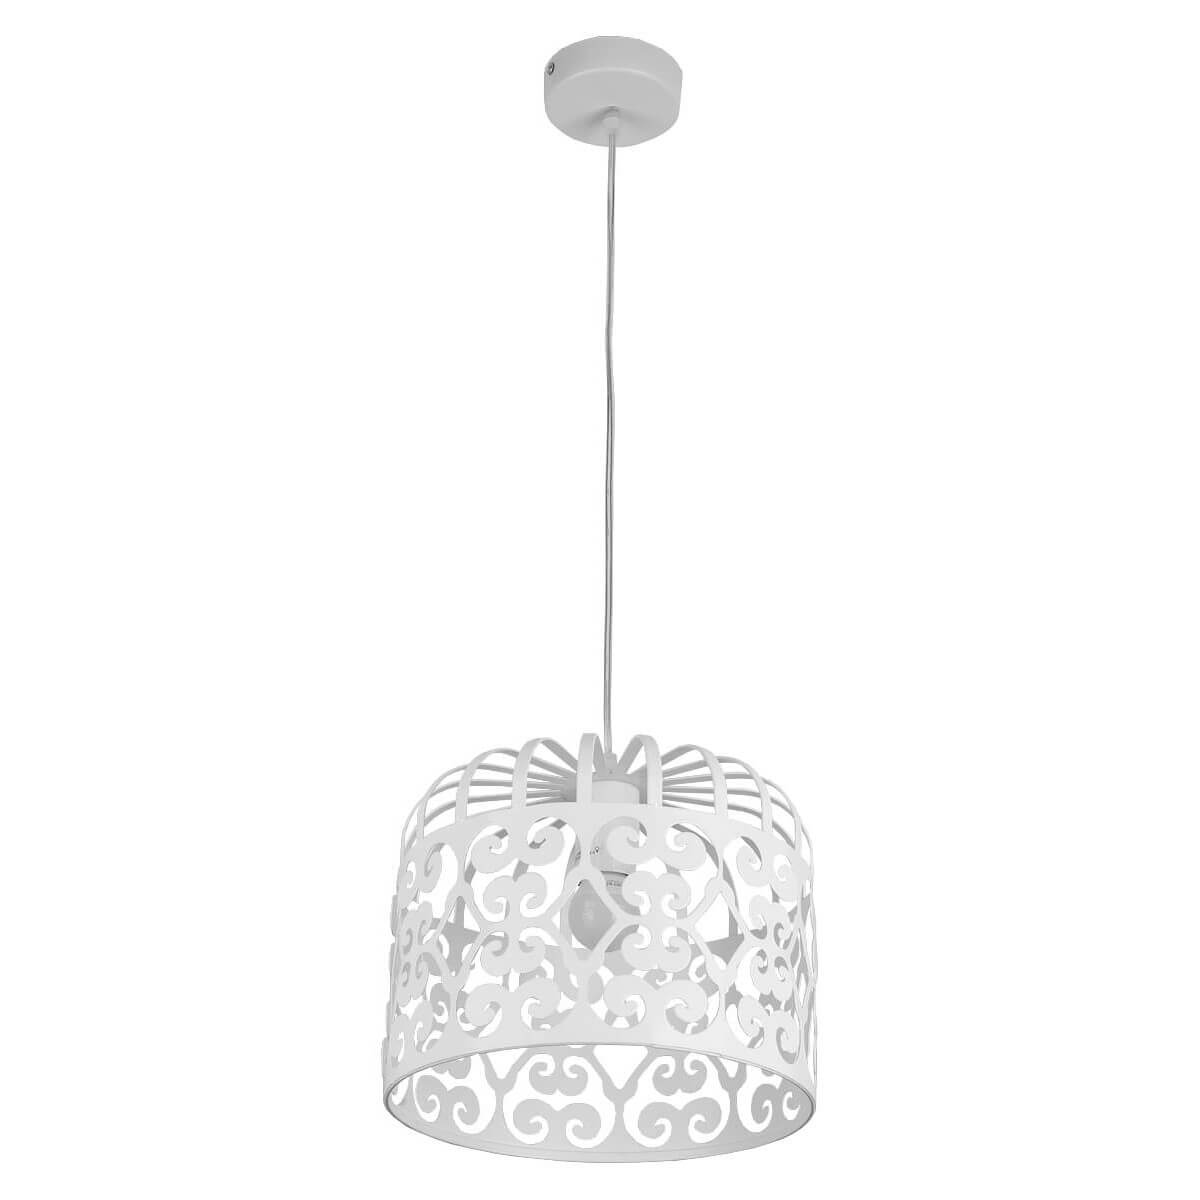 Светильник Toplight TL4010D-01WH Charlotte настенный светильник toplight tl9040y 01wh